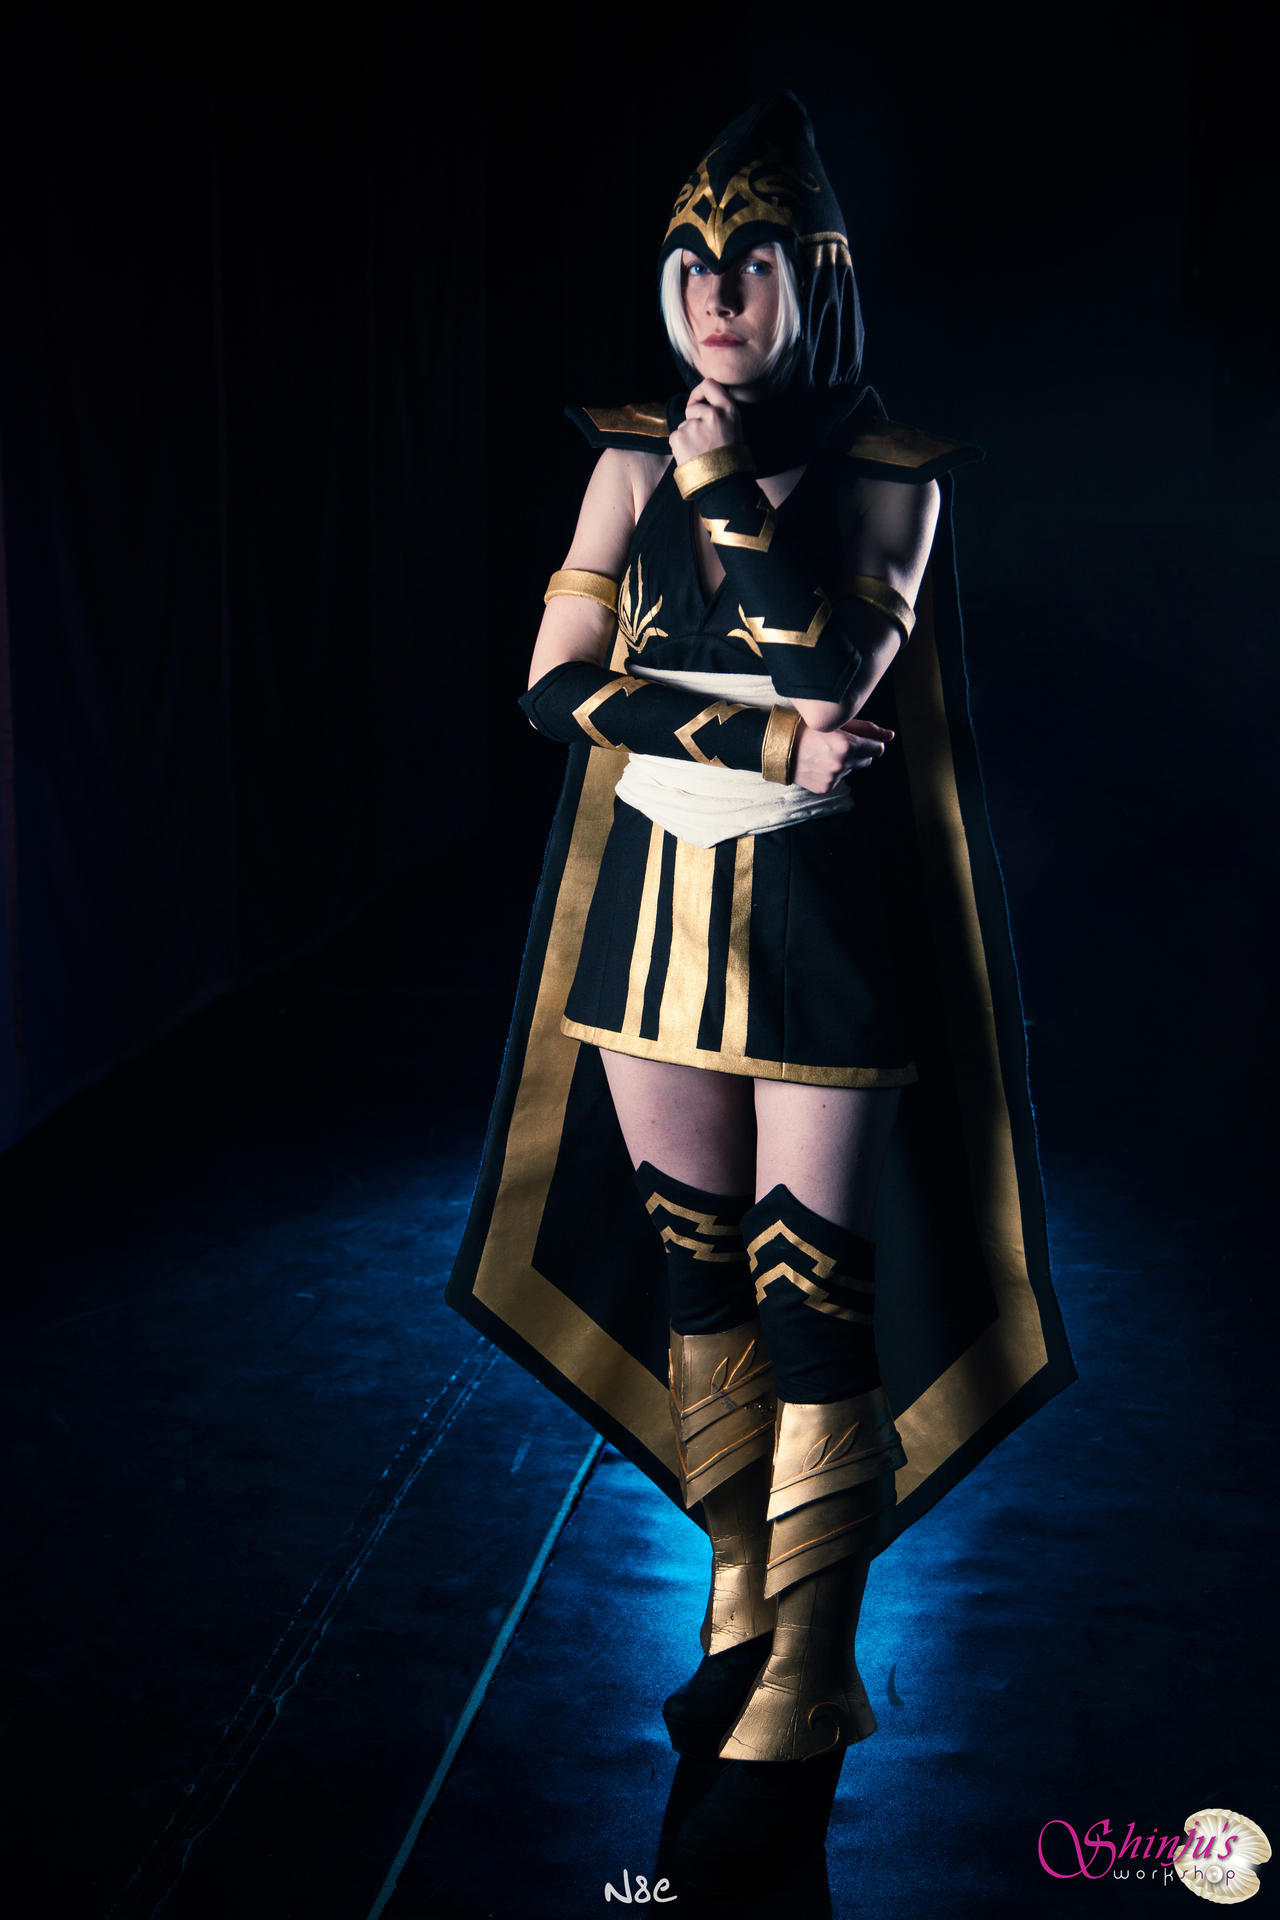 Ashe League of Legends - Where did I lose my bow?! by ShinjusWorkshop